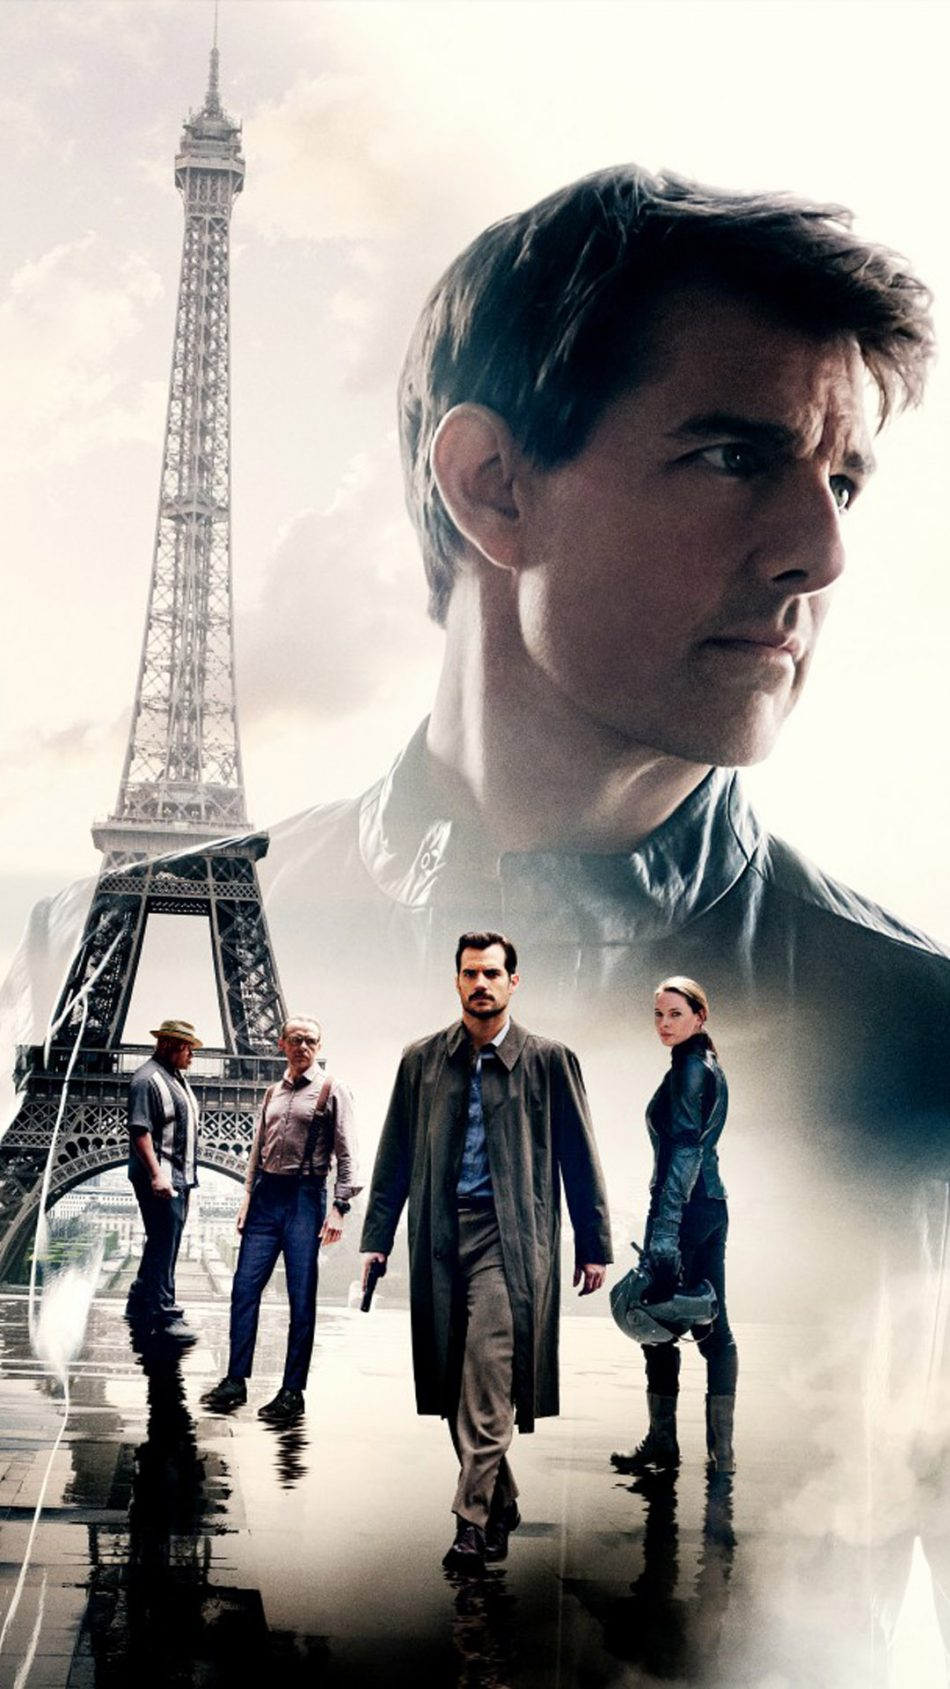 Download mission impossible fallout tom cruise 2018 free - Mission impossible wallpaper ...